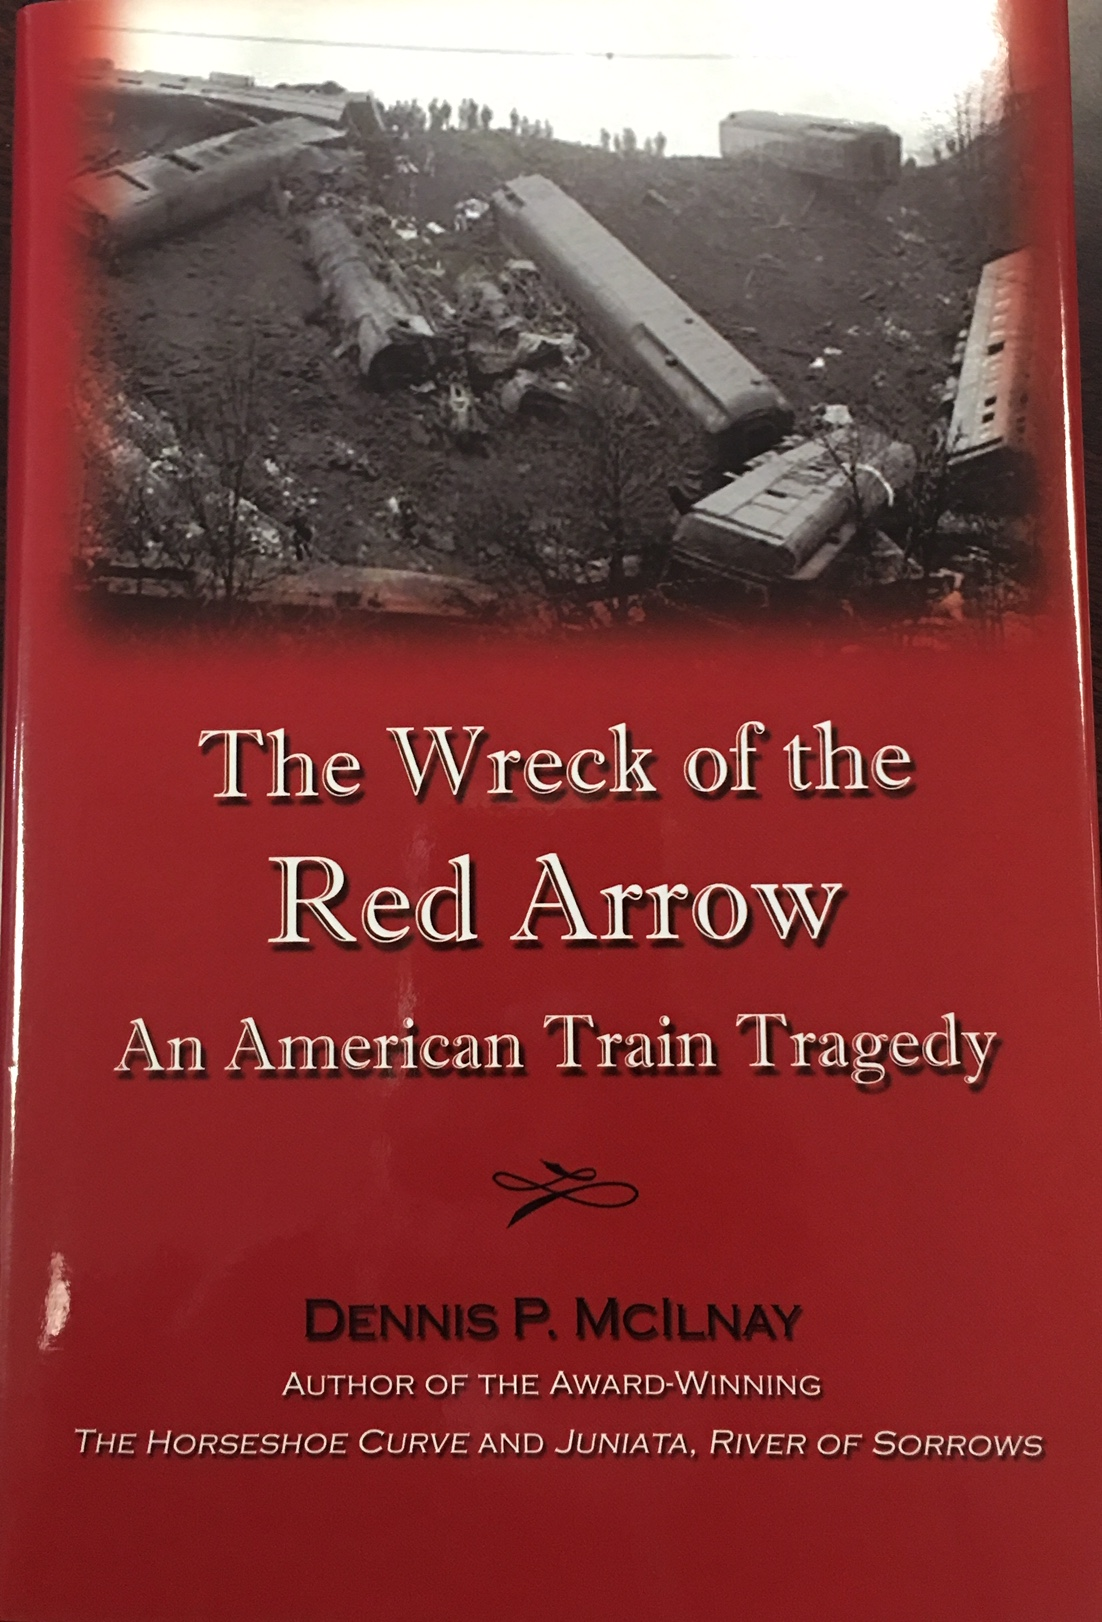 Image for The Wreck of the Red Arrow: An American Train Tragedy